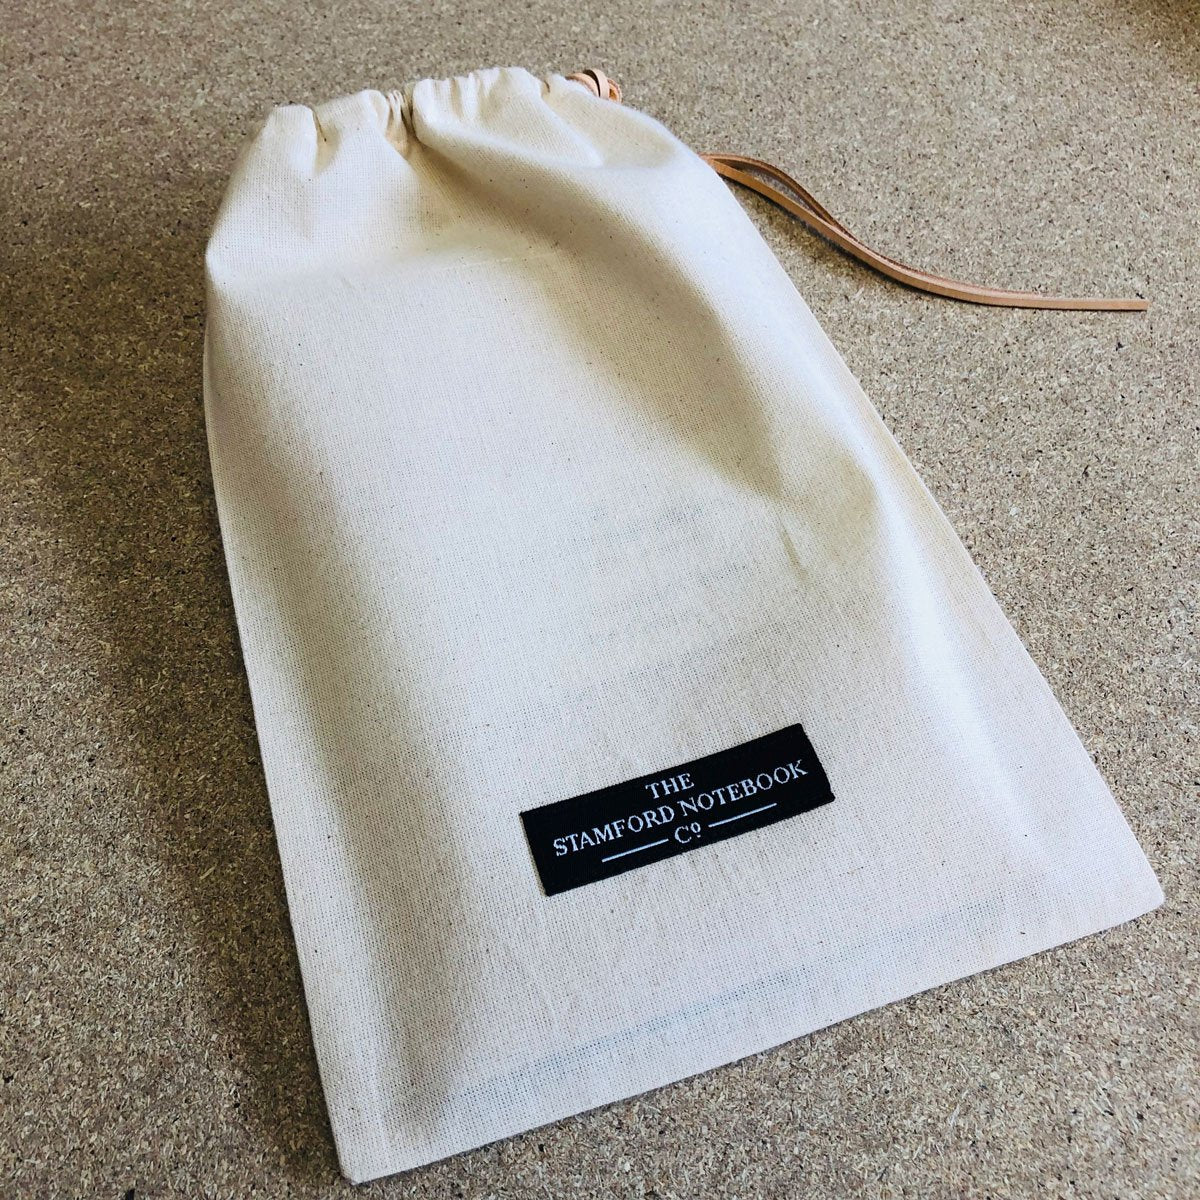 travellers journal in calico bag